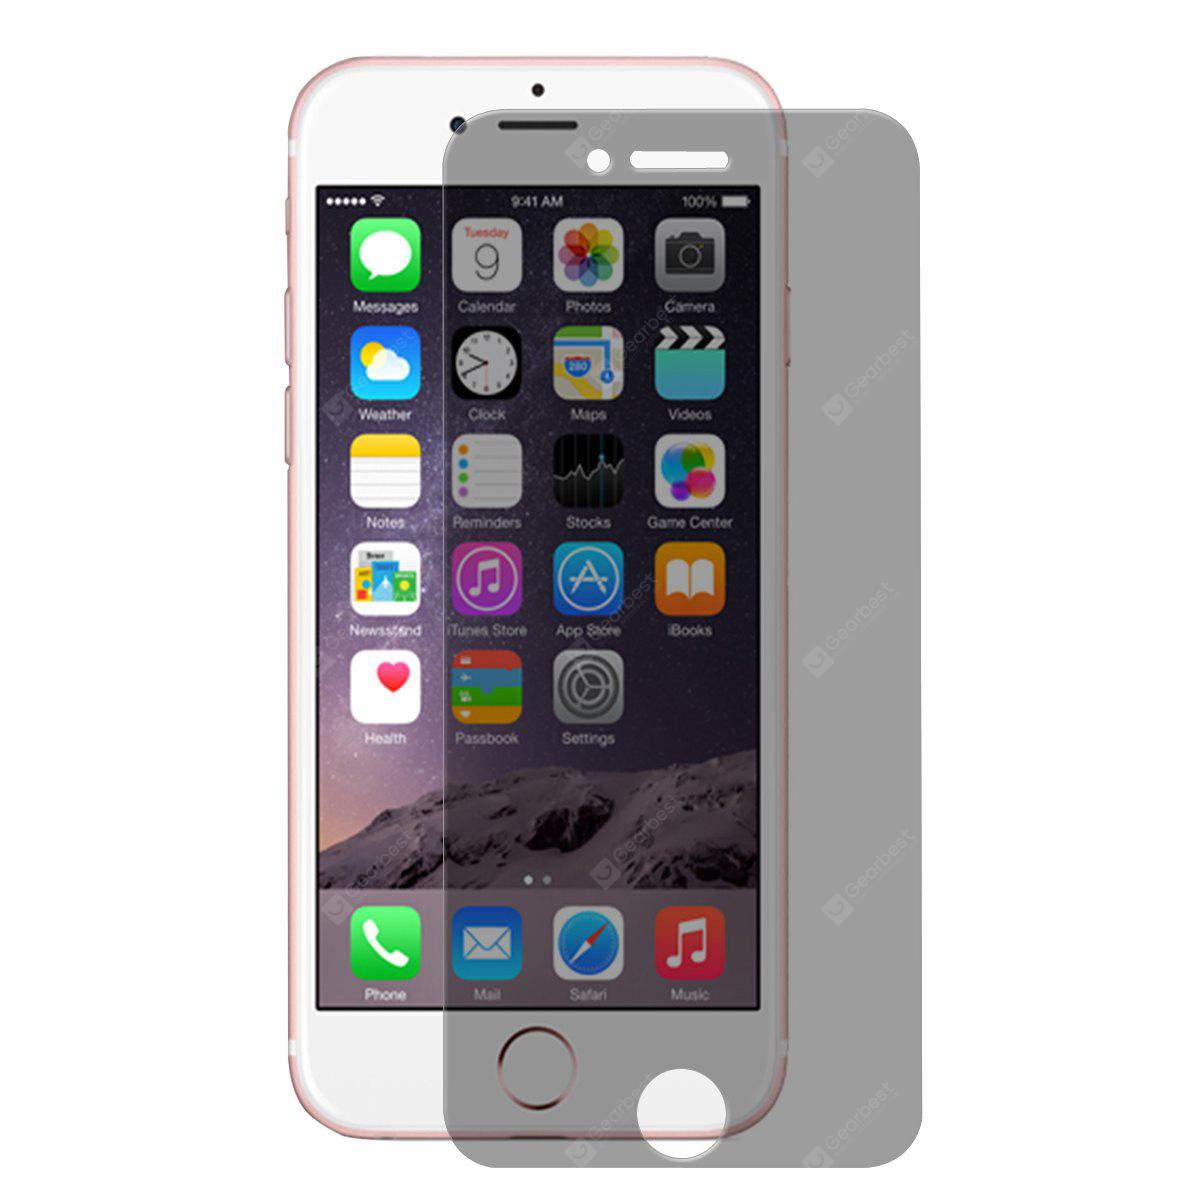 ENKAY 10PCS Tempered Glass Privacy Film for iPhone 6 Plus / 6s Plus